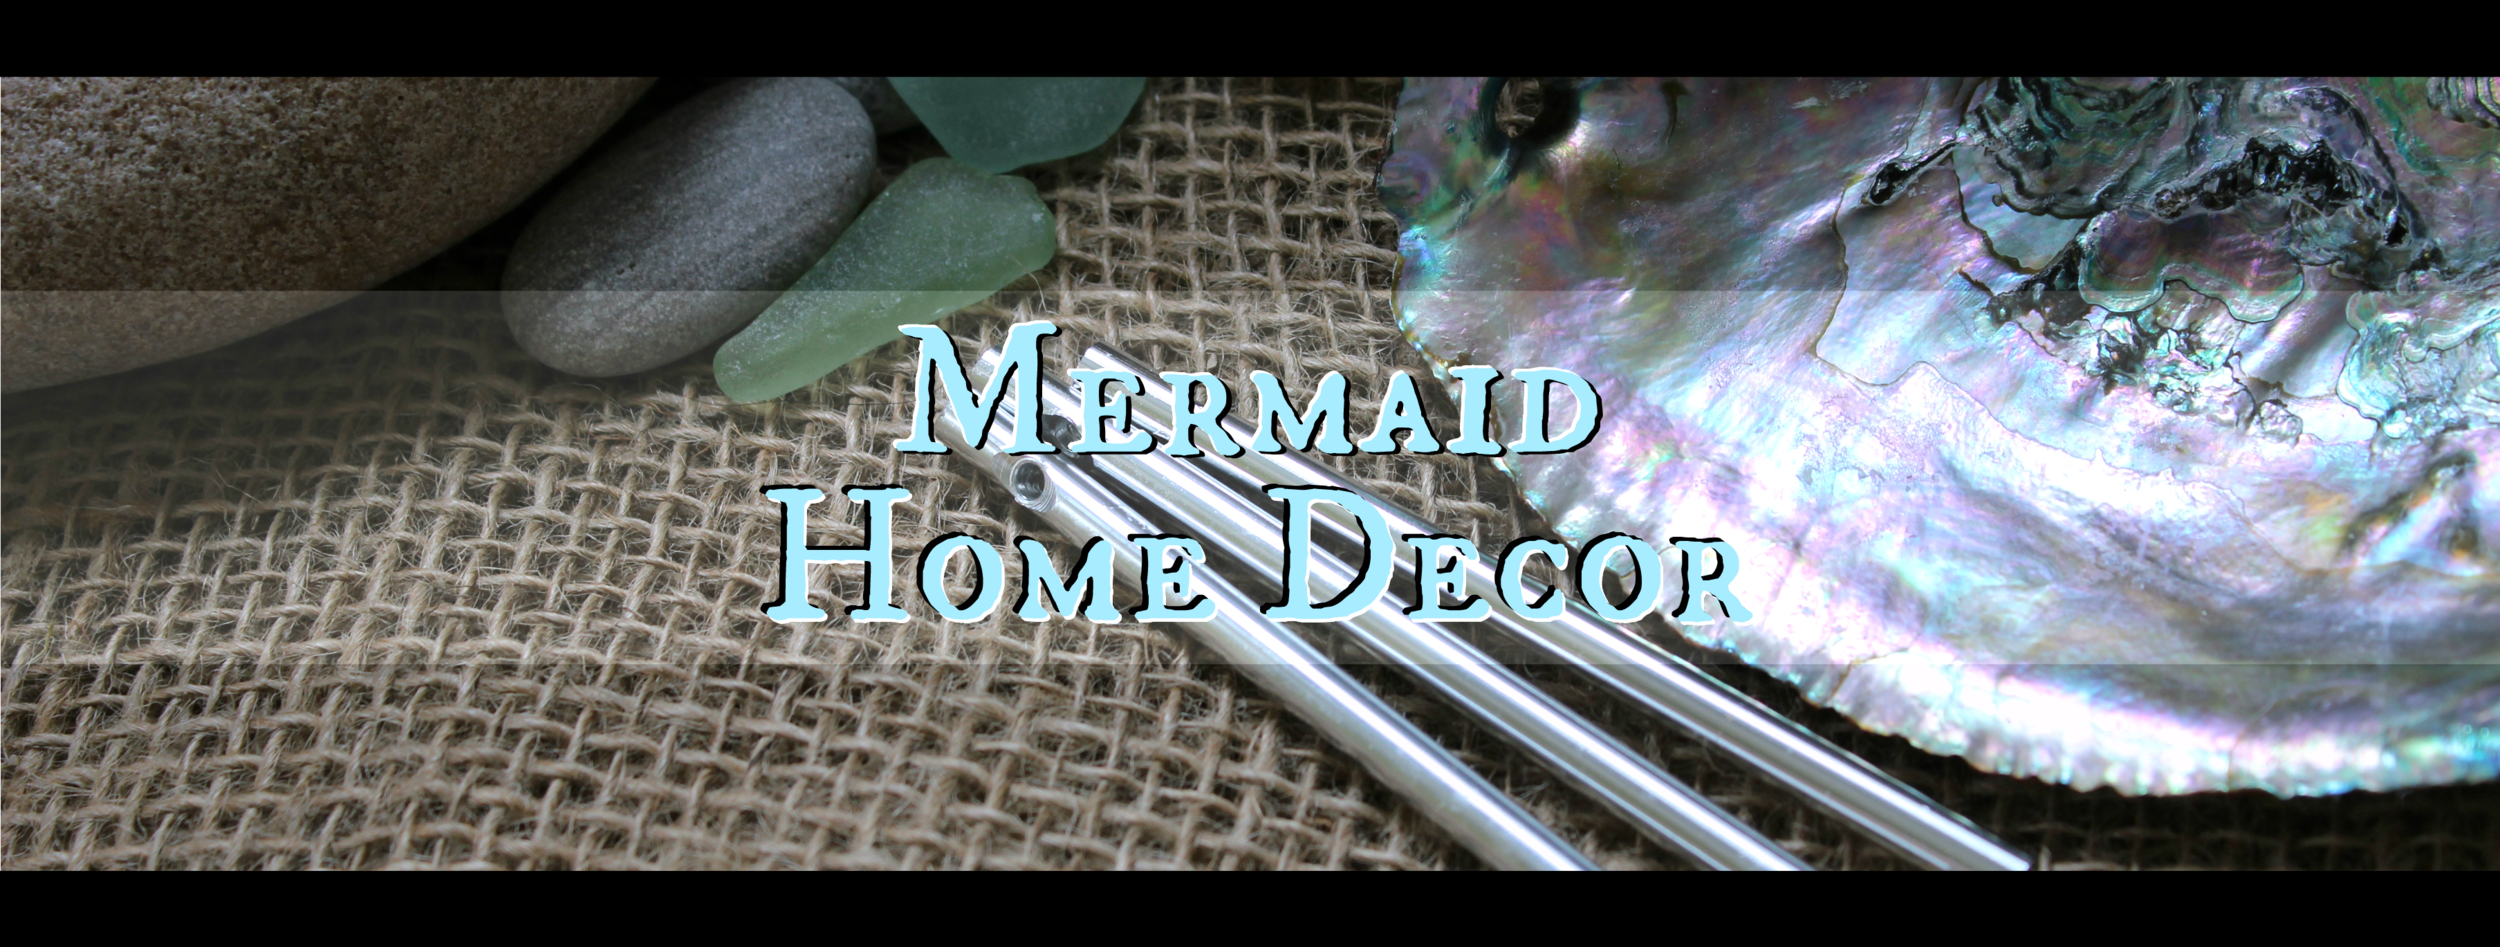 Be on the lookout for mermaid-themed home decor videos. I'll continue on with my regular content, but I would like to add in some DIY tutorial videos that will help you to deck out your mermaid cave too!